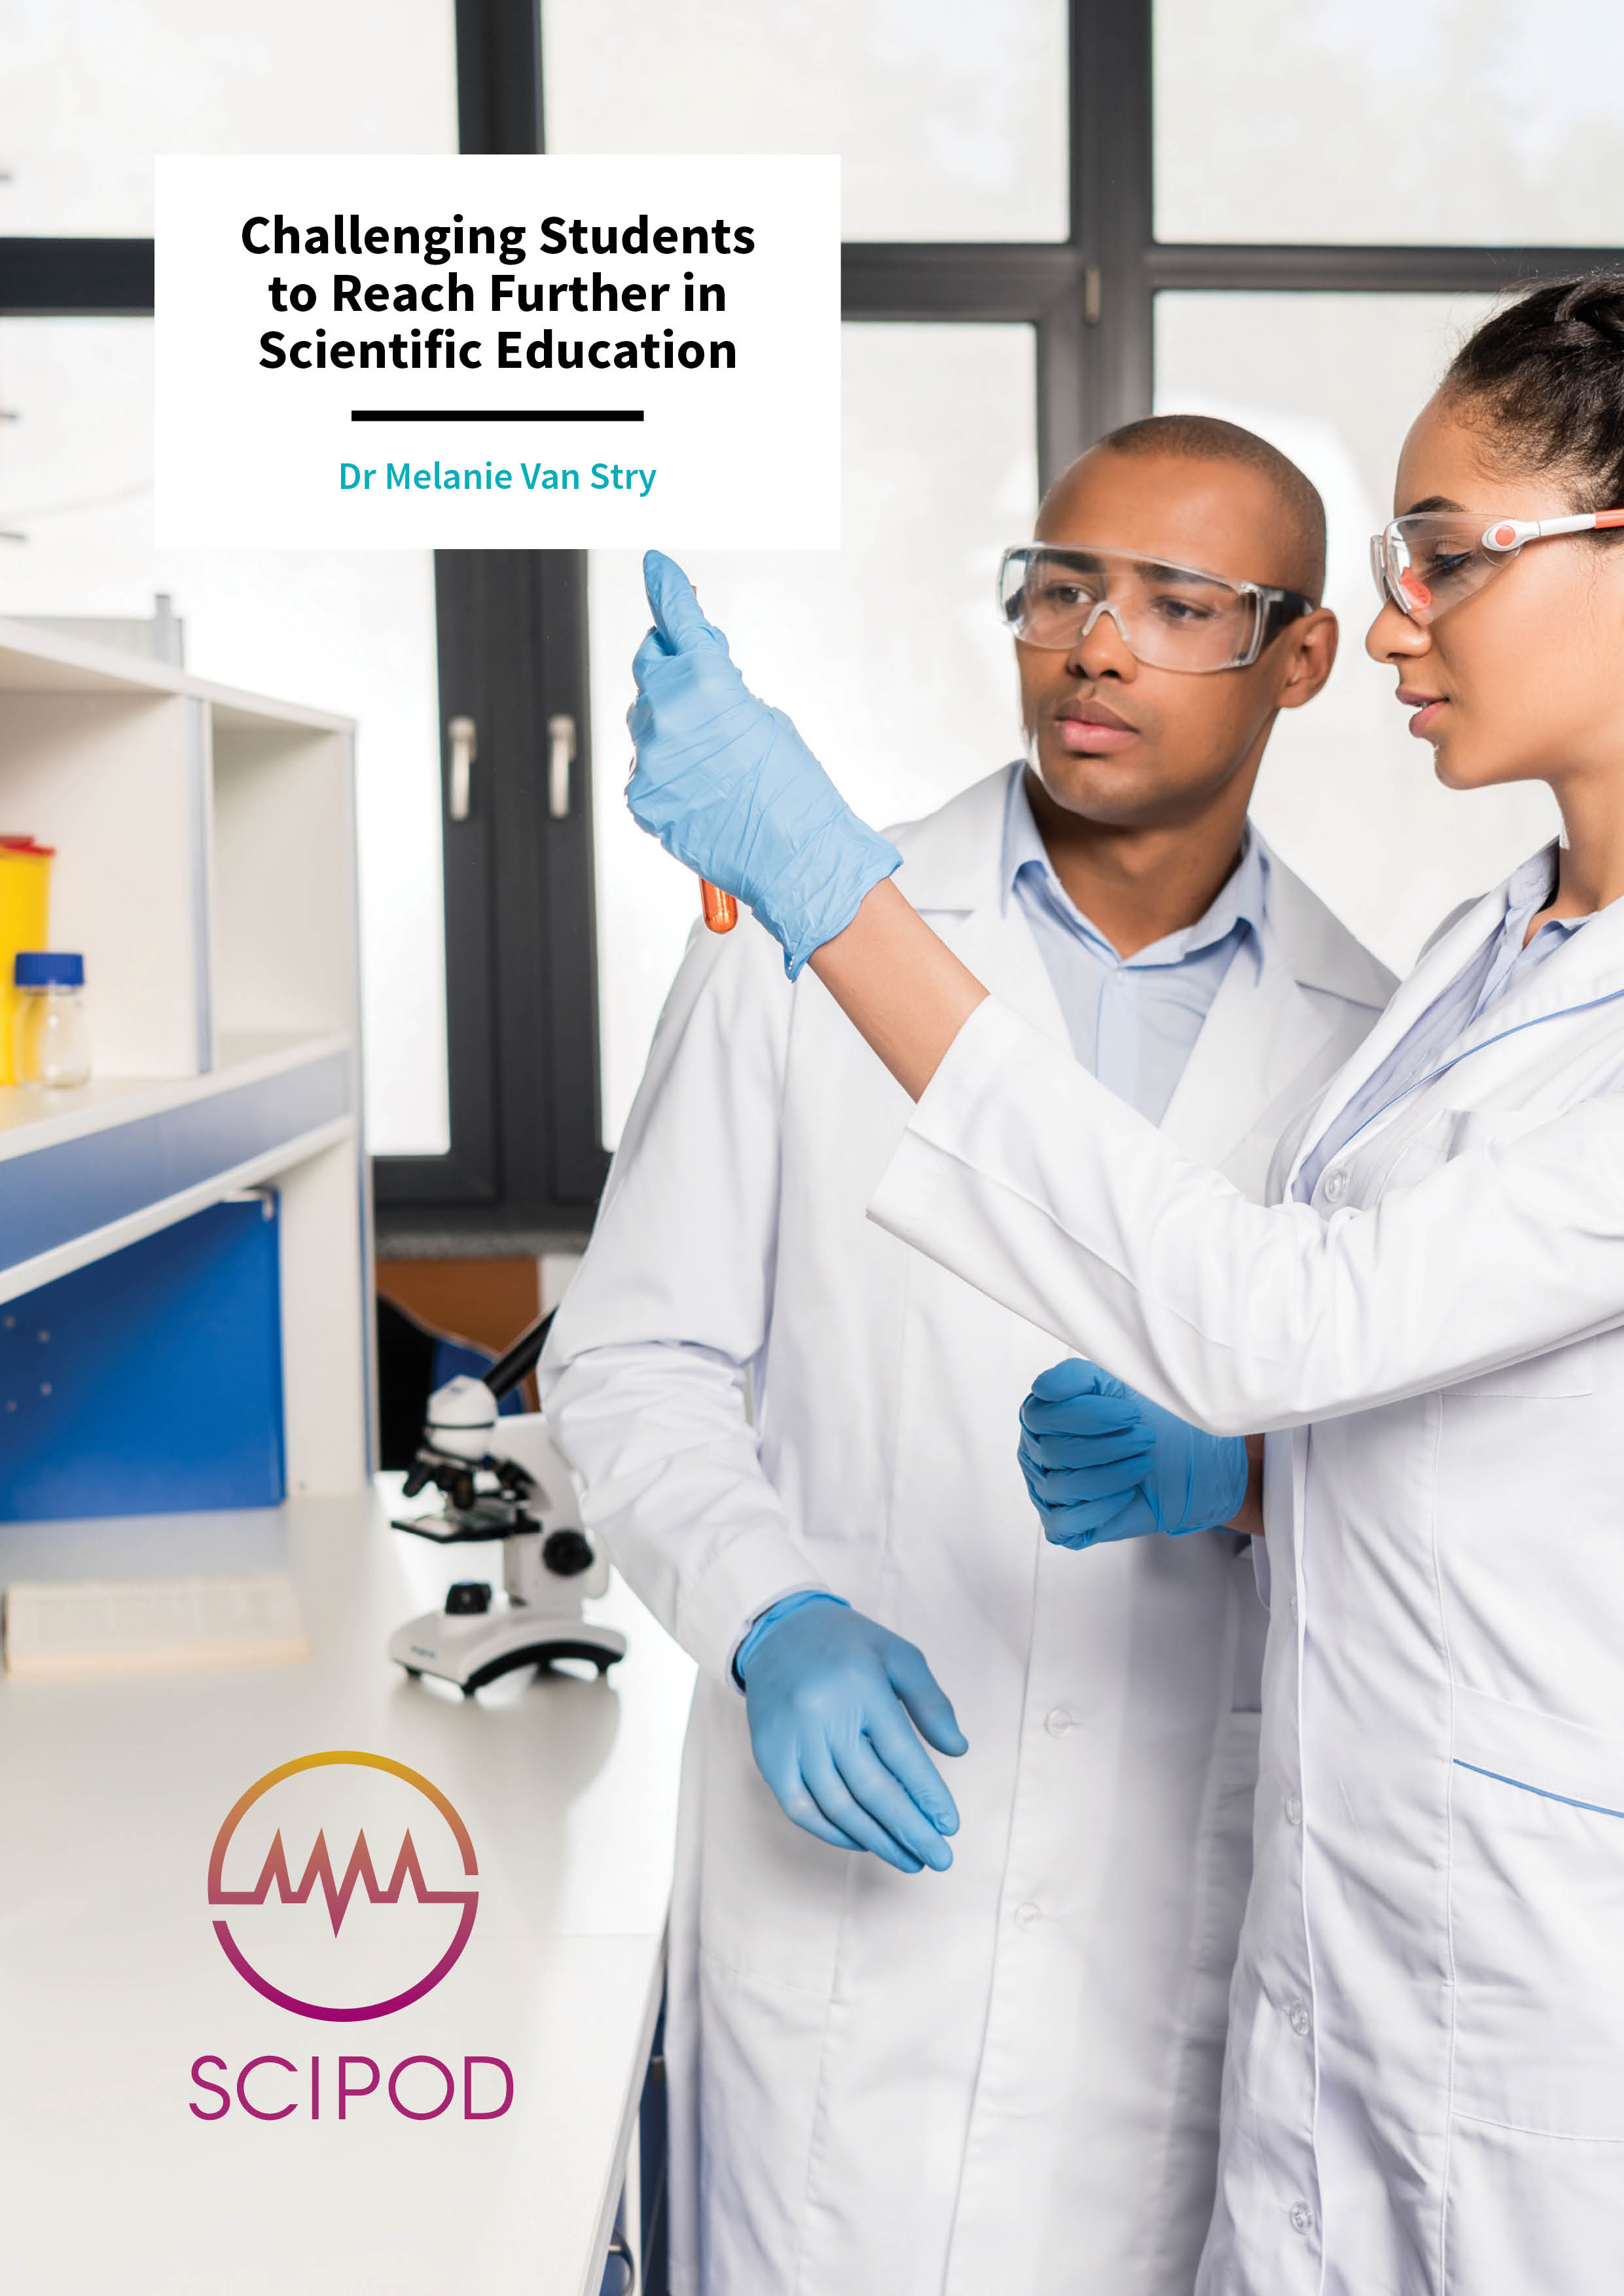 Challenging Students to Reach Further in Scientific Education – Dr Melanie Van Stry, Lane College